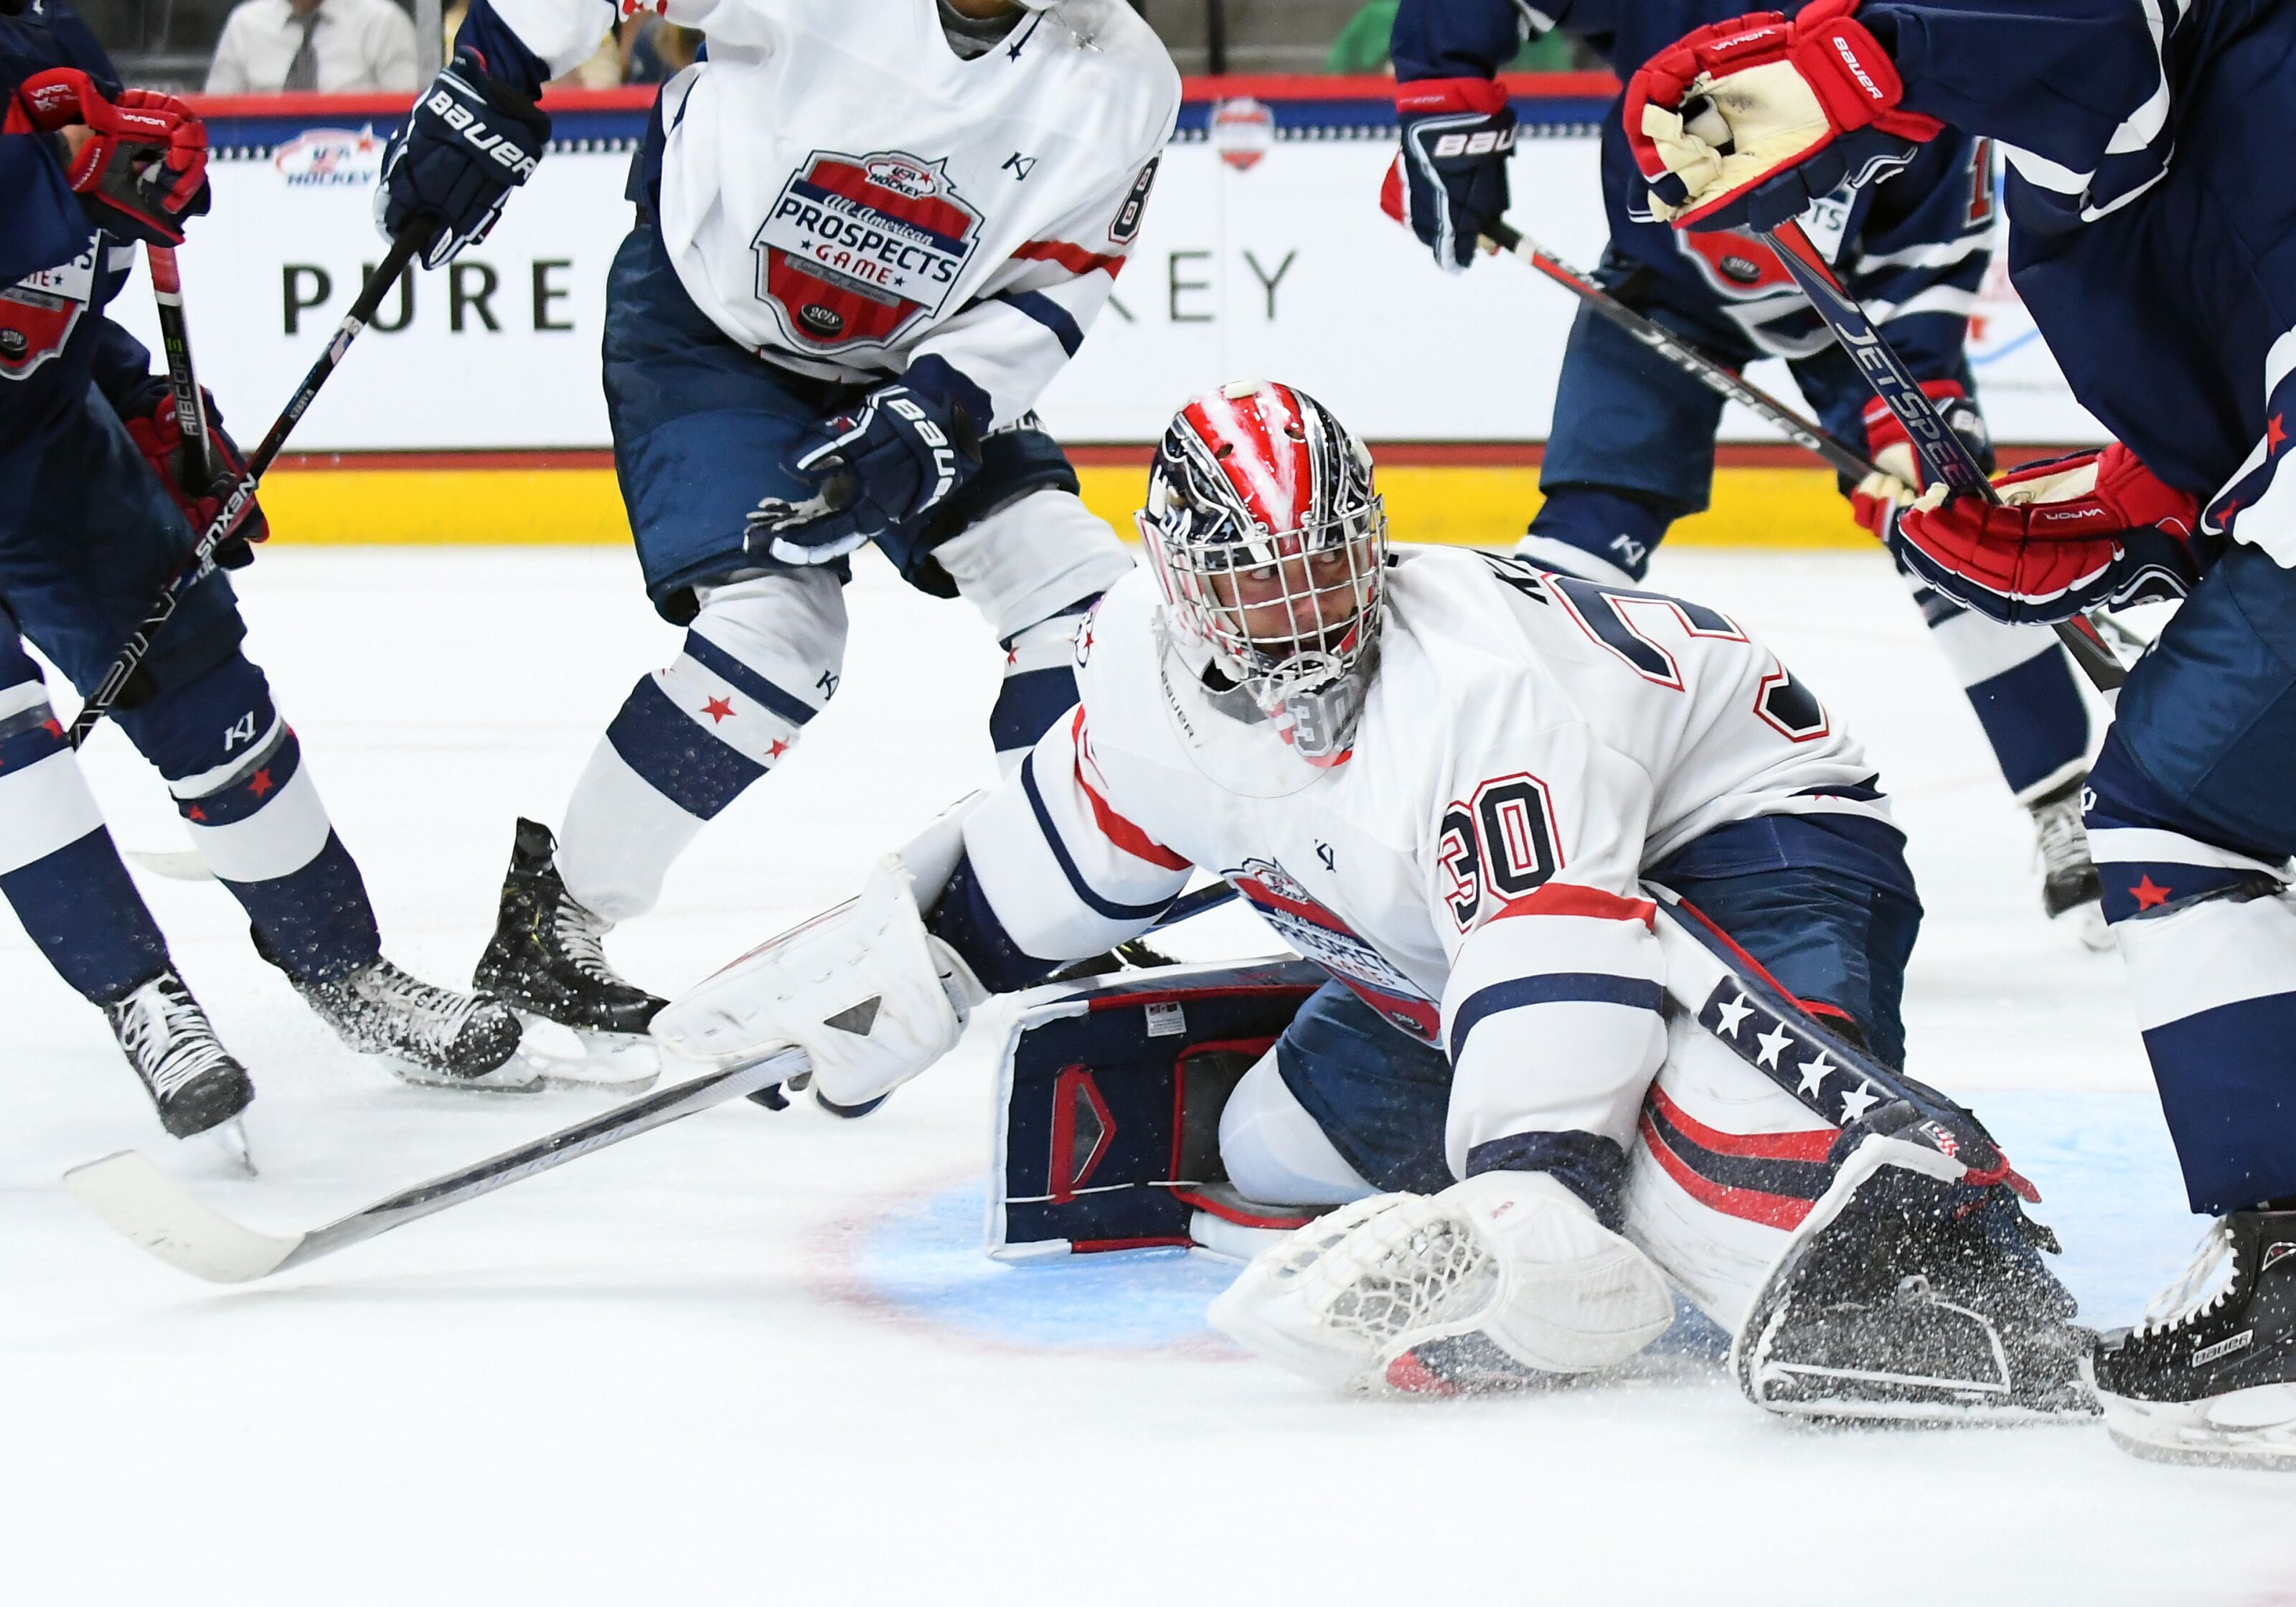 ST. PAUL, MN - SEPTEMBER 19: Team Langenbrunner goalie Spencer Knight (30) kicks the puck into the corner during the USA Hockey All-American Prospects Game between Team Leopold and Team Langenbrunner on September 19, 2018 at Xcel Energy Center in St. Paul, MN. Team Leopold defeated Team Langenbrunner 6-4.(Photo by Nick Wosika/Icon Sportswire via Getty Images)